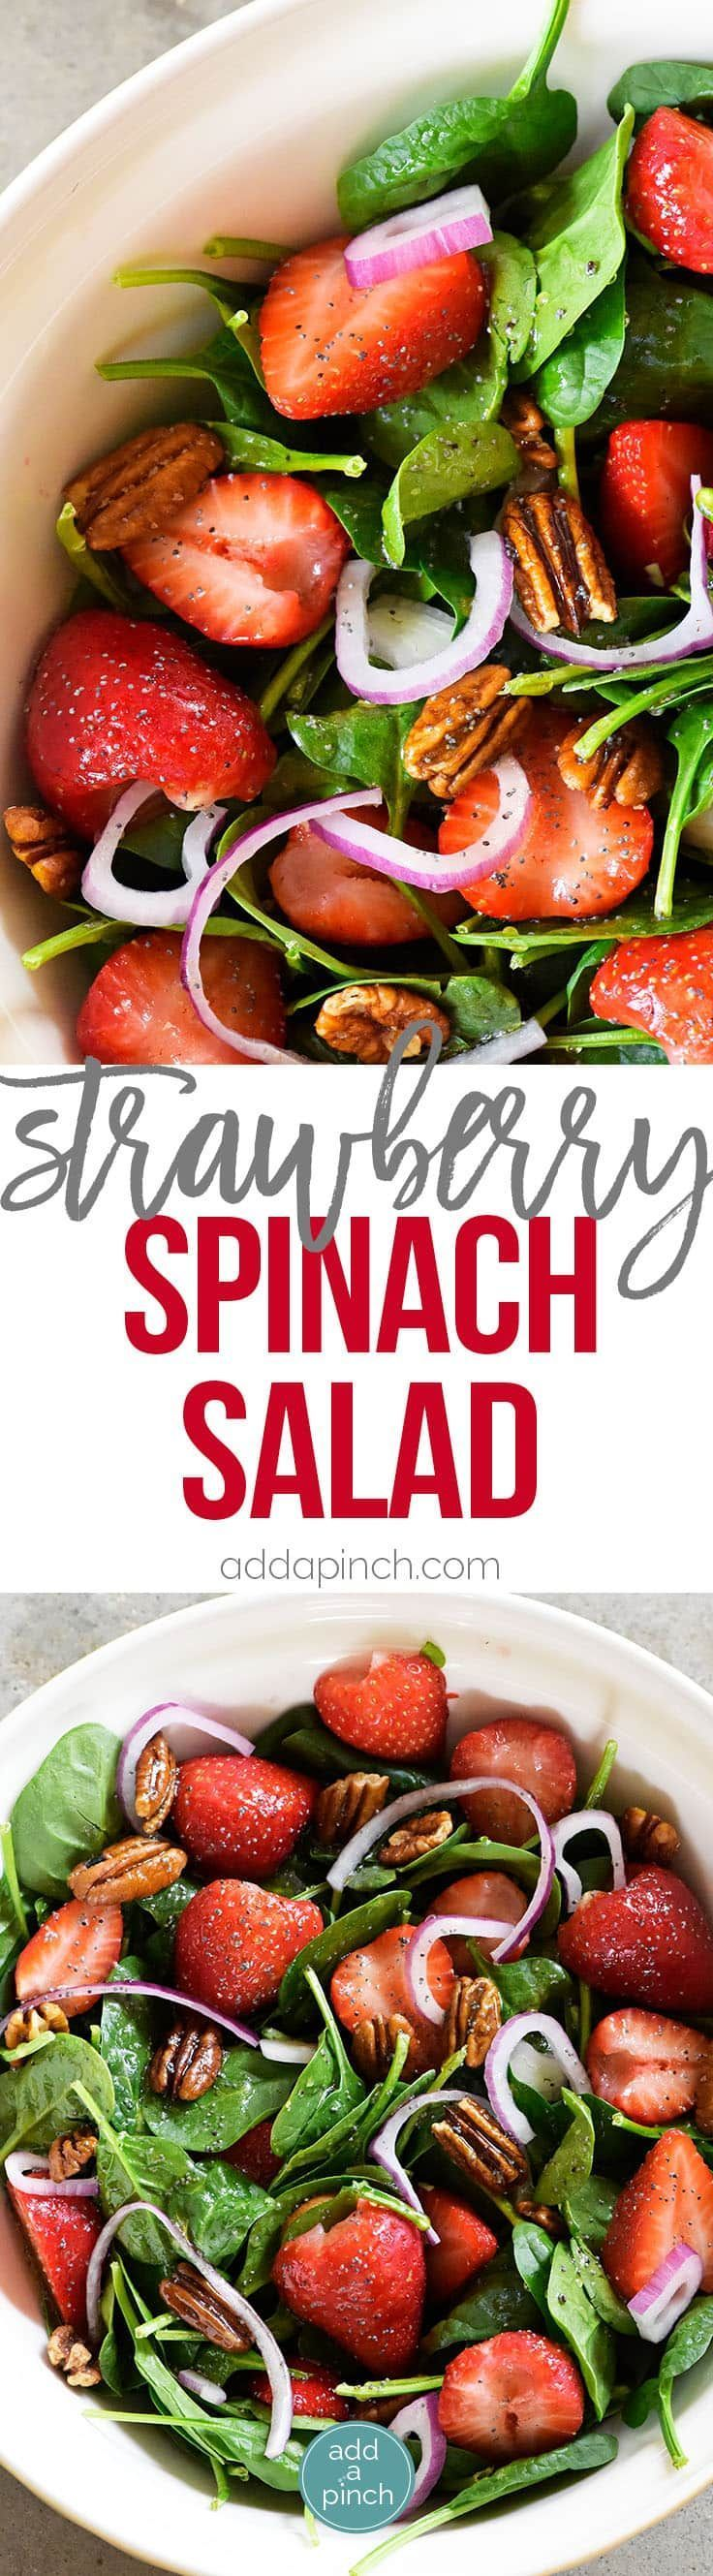 Strawberry Spinach Salad Recipe - Strawberry Spinach Salad topped with an easy Poppy Seed Dressing makes for a beautiful and delicious spring and summer salad recipe. Perfect for parties, picnics, and (Simple Vegan Dip)